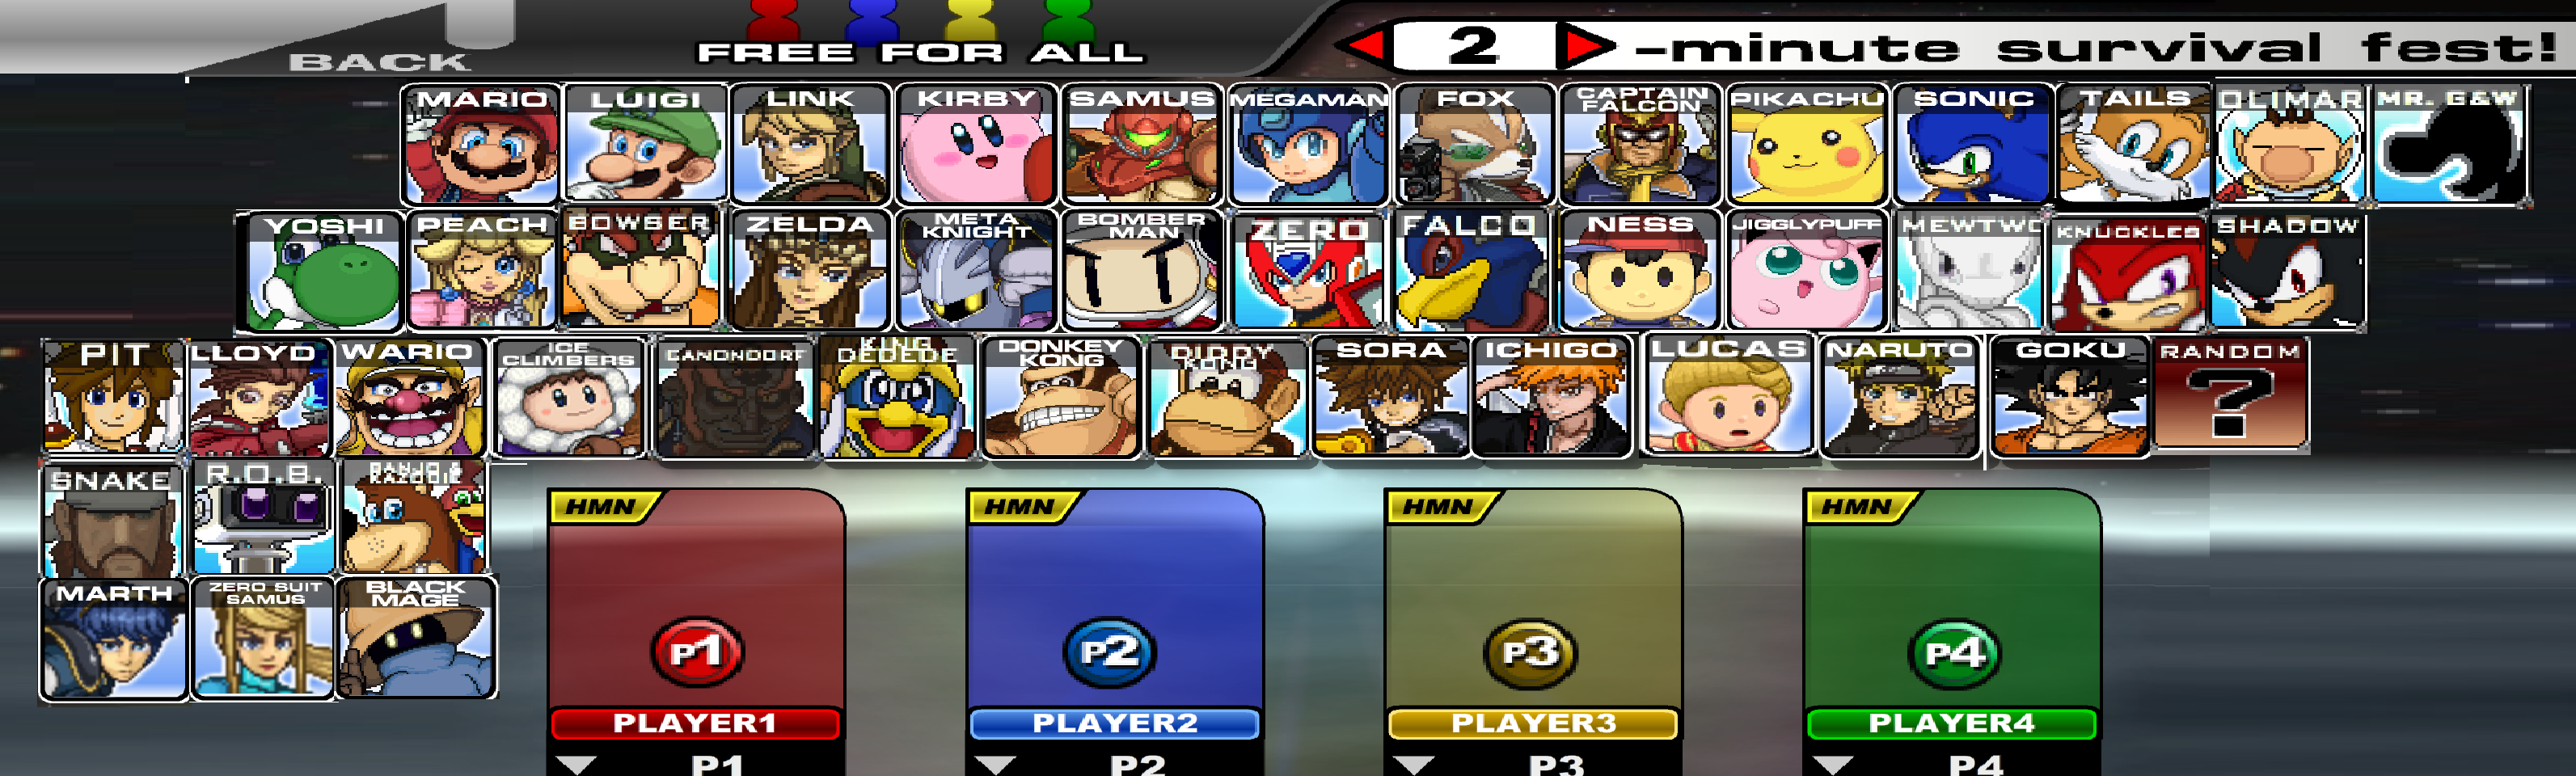 super smash flash v 8